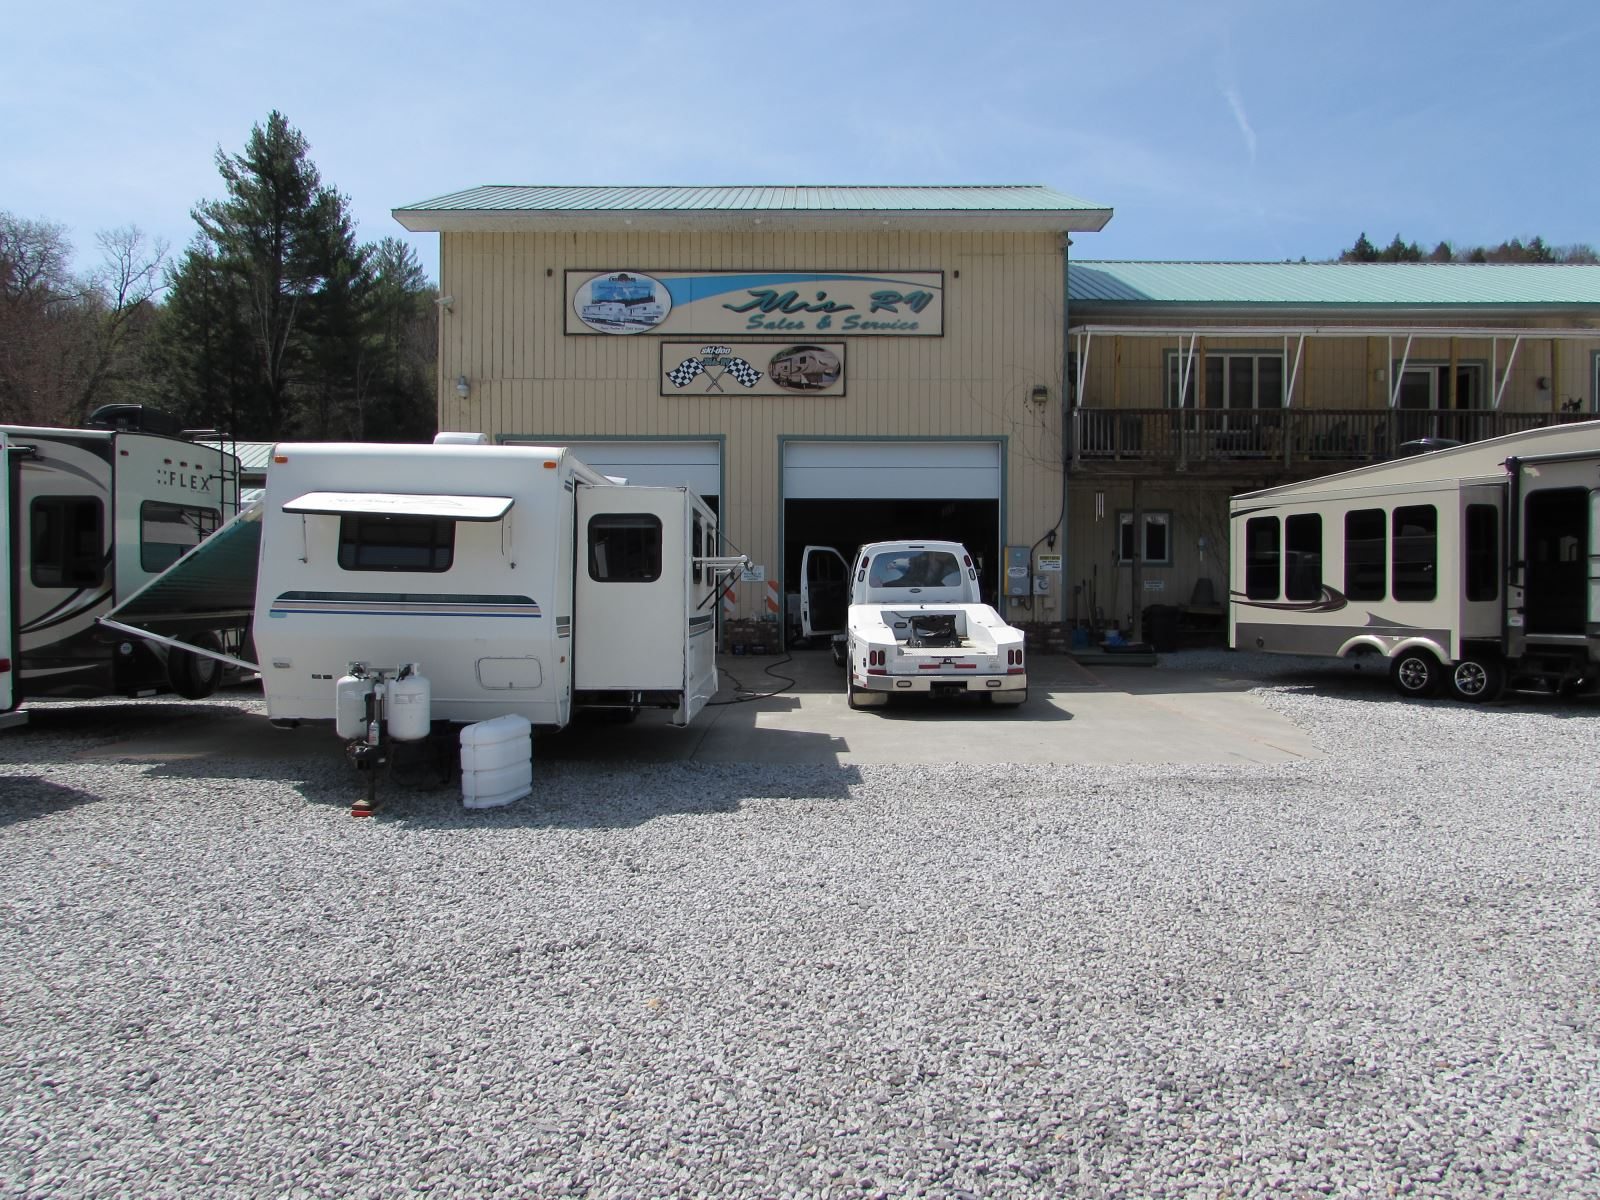 M's RV Service Store Front